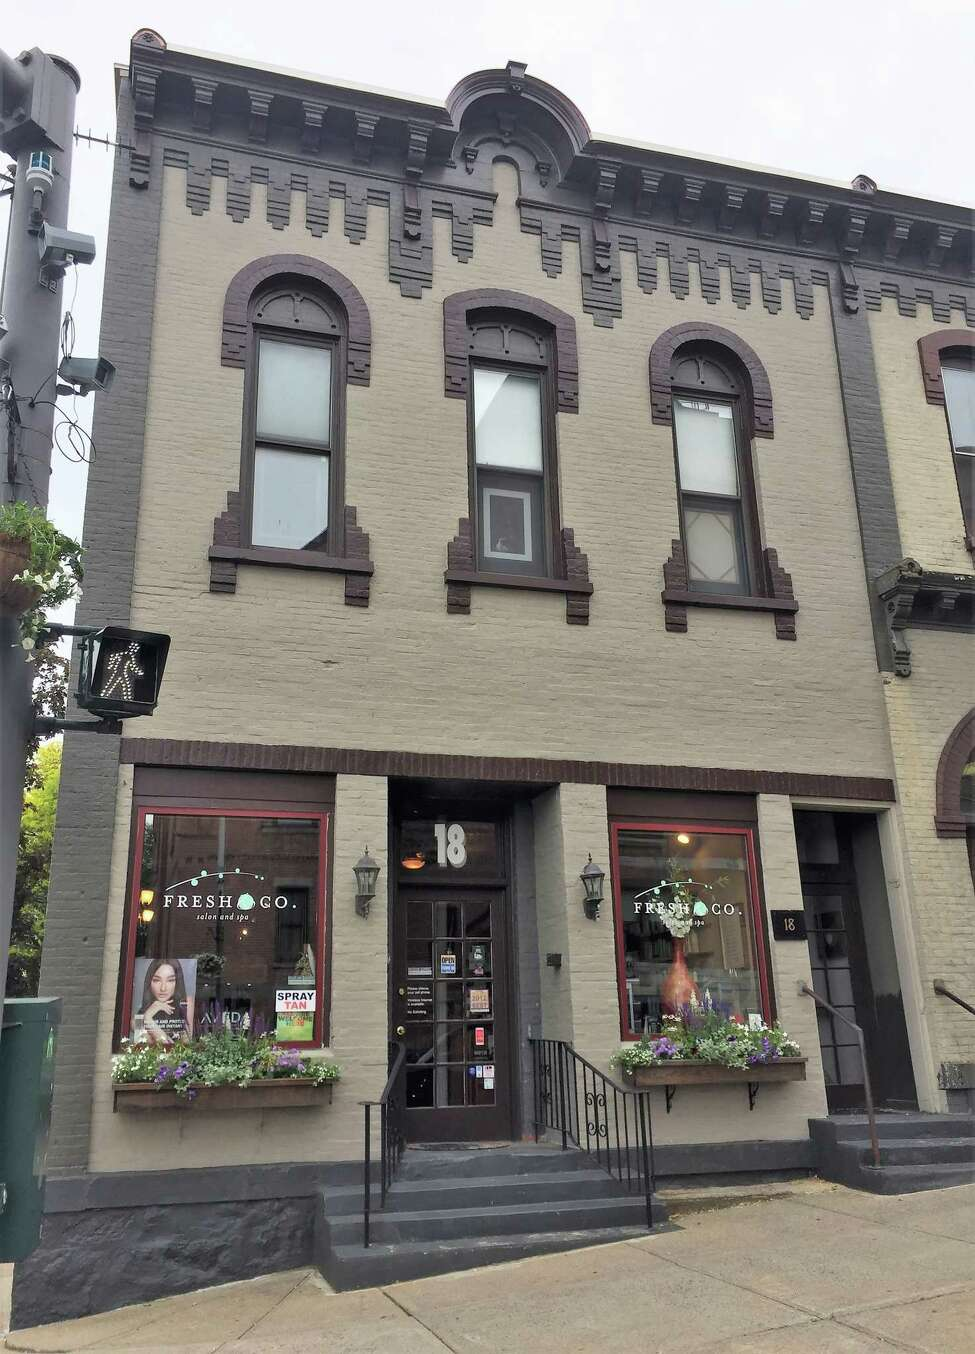 The owners of 18 Lake Ave., Melissa Paquet and Joe Ponessa, received an Exterior Building Rehabilitation award from the Saratoga Springs Preservation Foundation in May, 2019. They worked with local craftsman Chris Bennett.